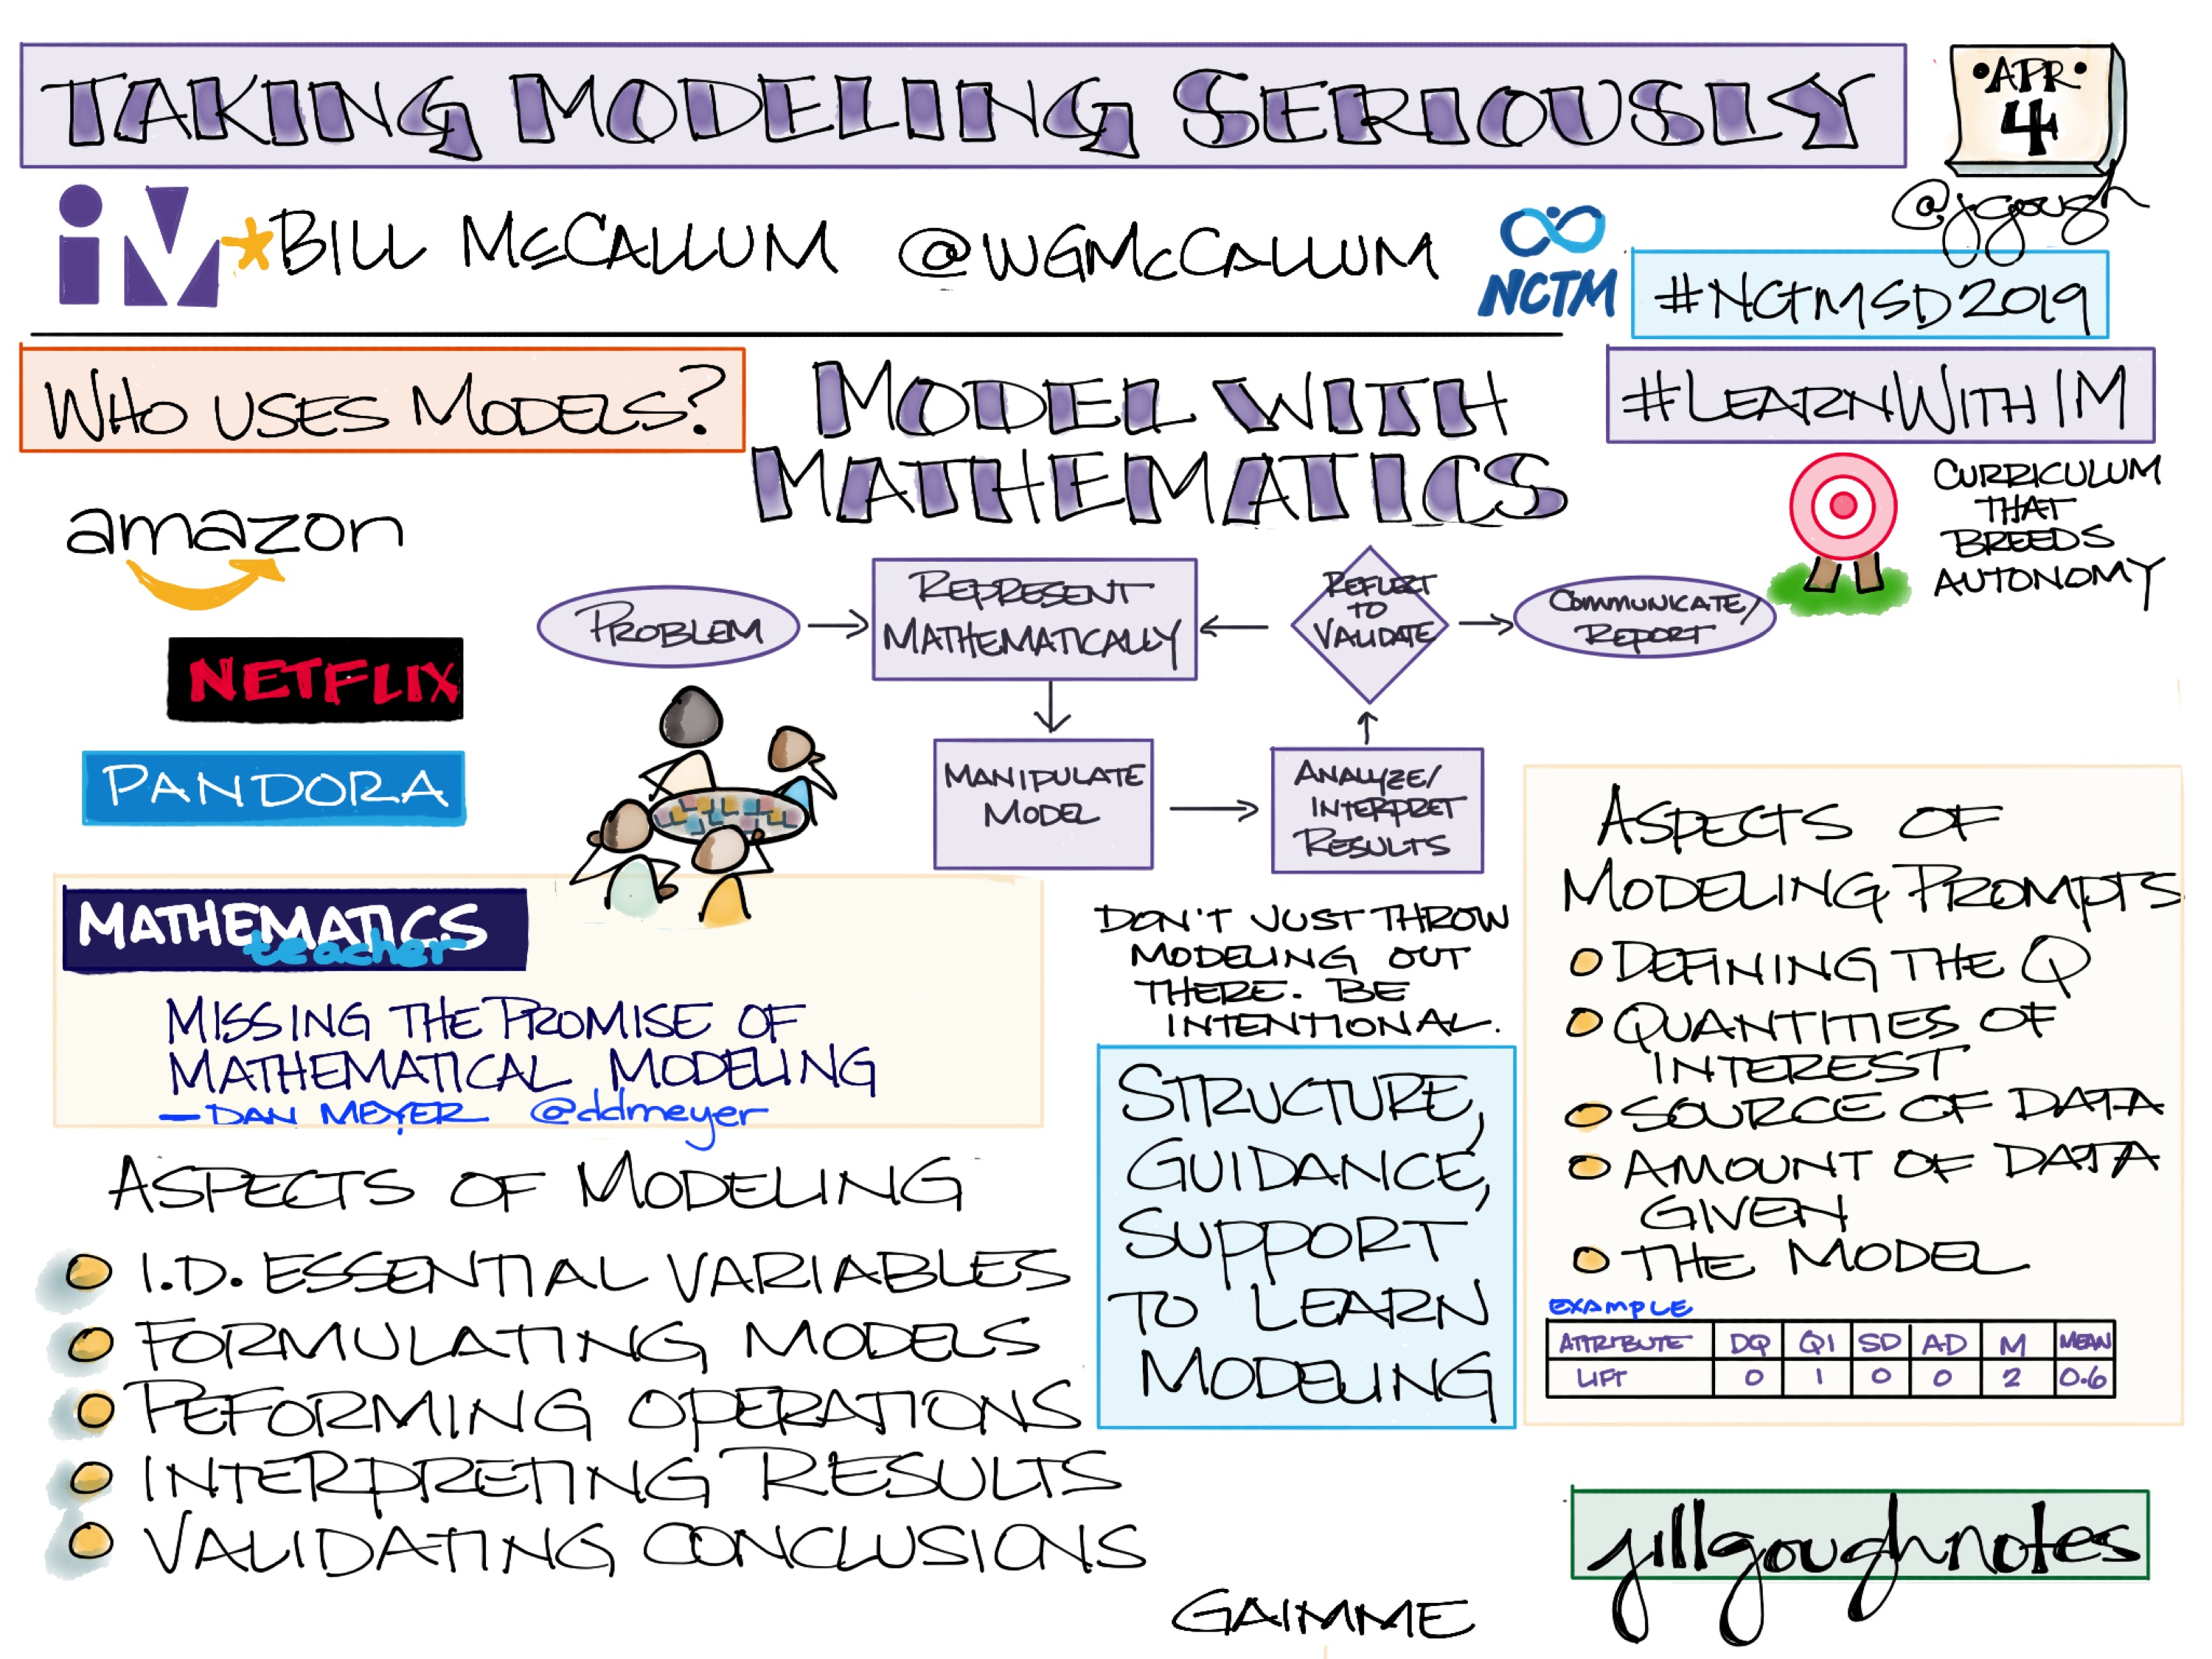 Sharing my #Sketchnotes from Taking Modeling Seriously with @WGMcCallum #LearnWithIM #NCTMSD2019